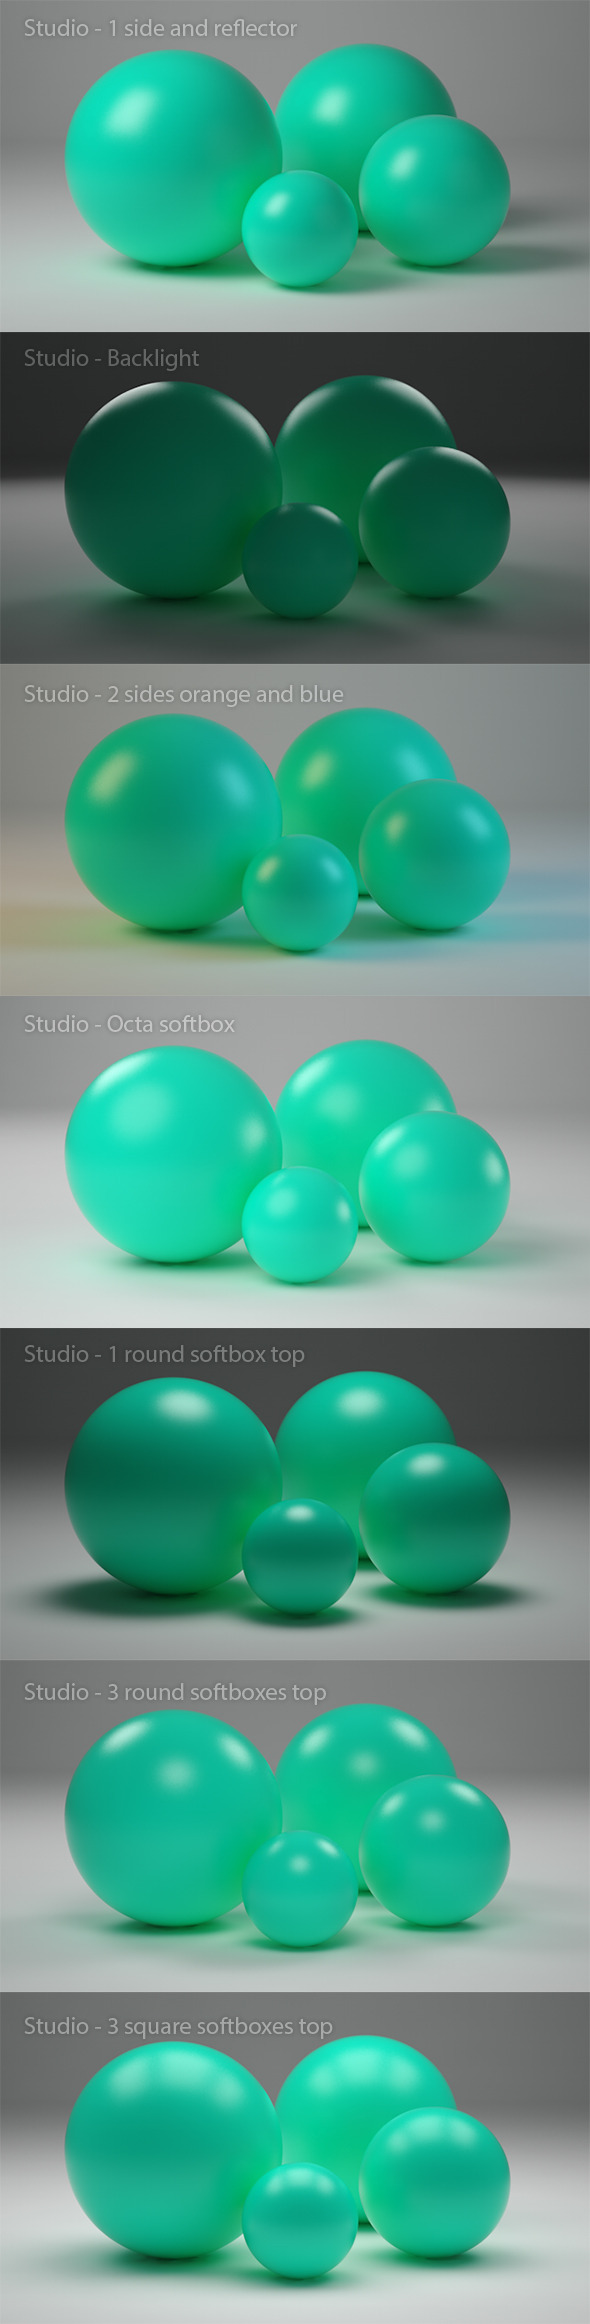 Cinema 4D studio with 7 variations - 3DOcean Item for Sale